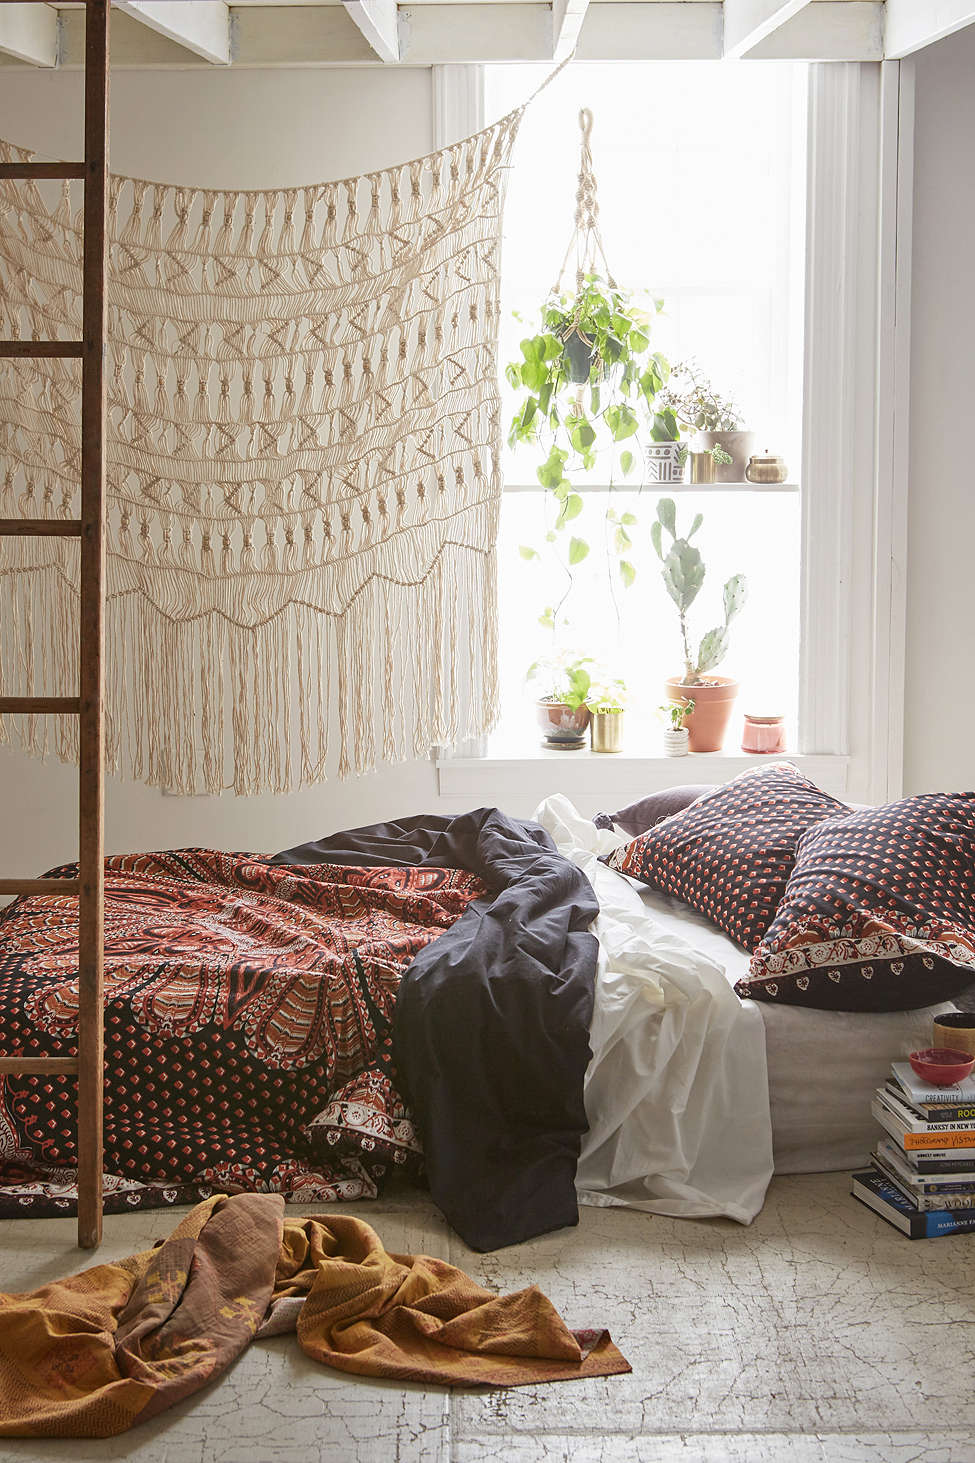 Genial 40 Bohemian Bedrooms To Fashion Your Eclectic Tastes After